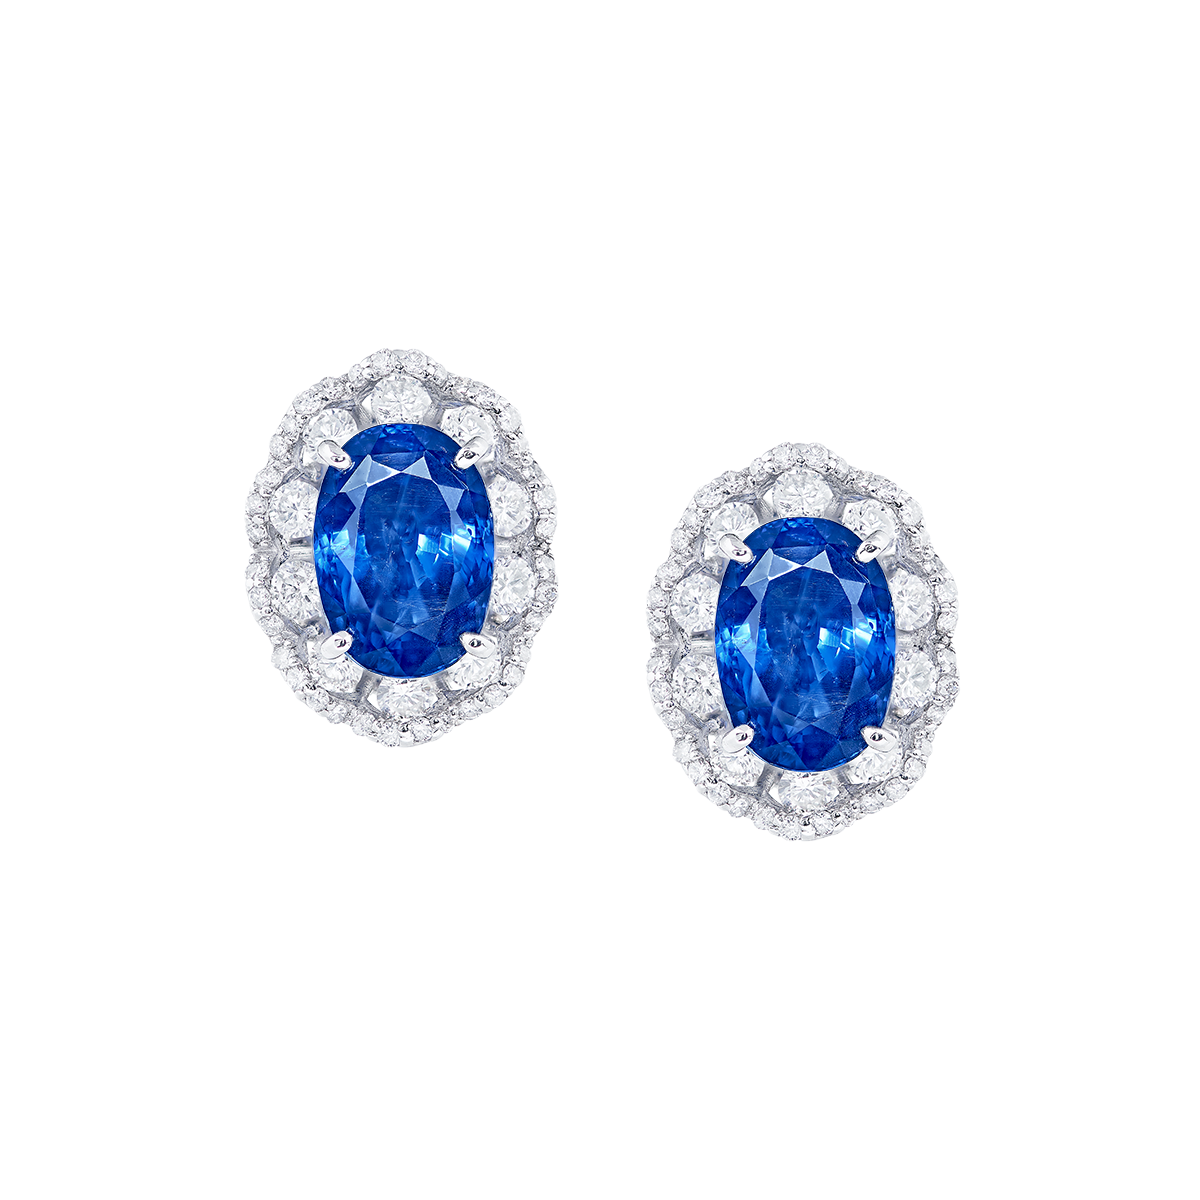 7.32克拉 斯里蘭卡 無燒皇家藍寶石耳環